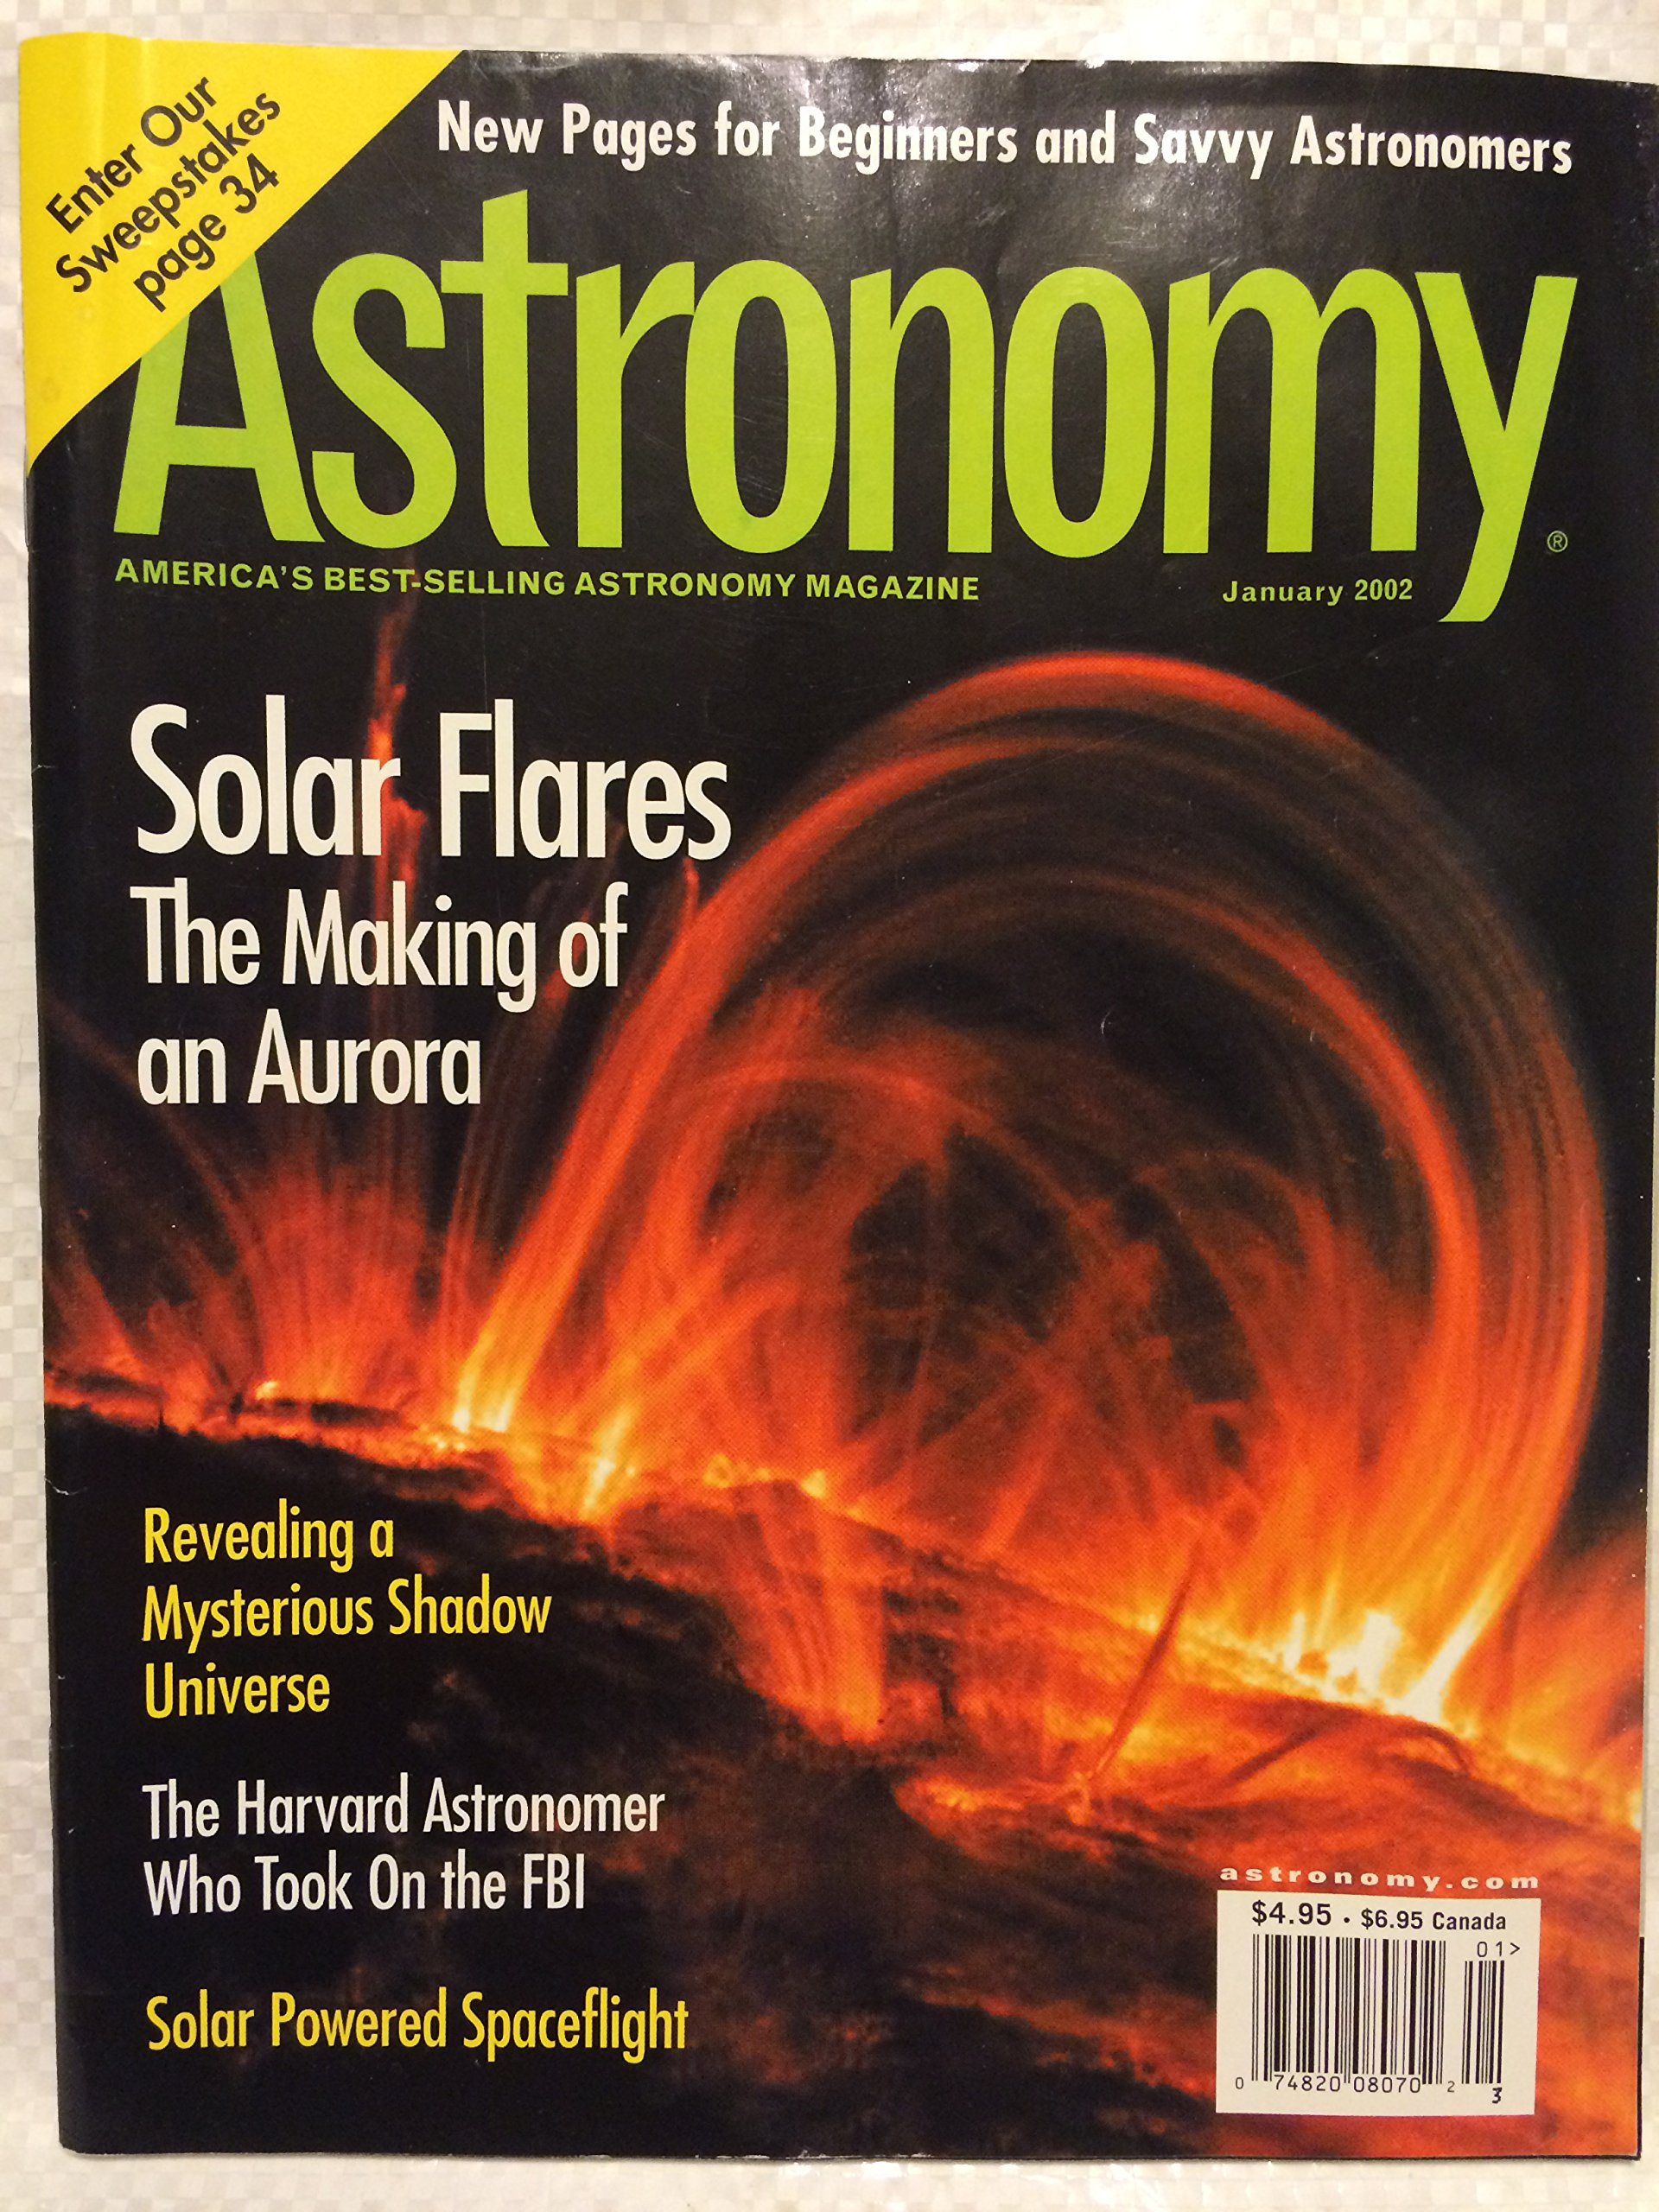 Astronomy January 2002 (Astronomy Magazine, Volume 30, No. 1) ebook